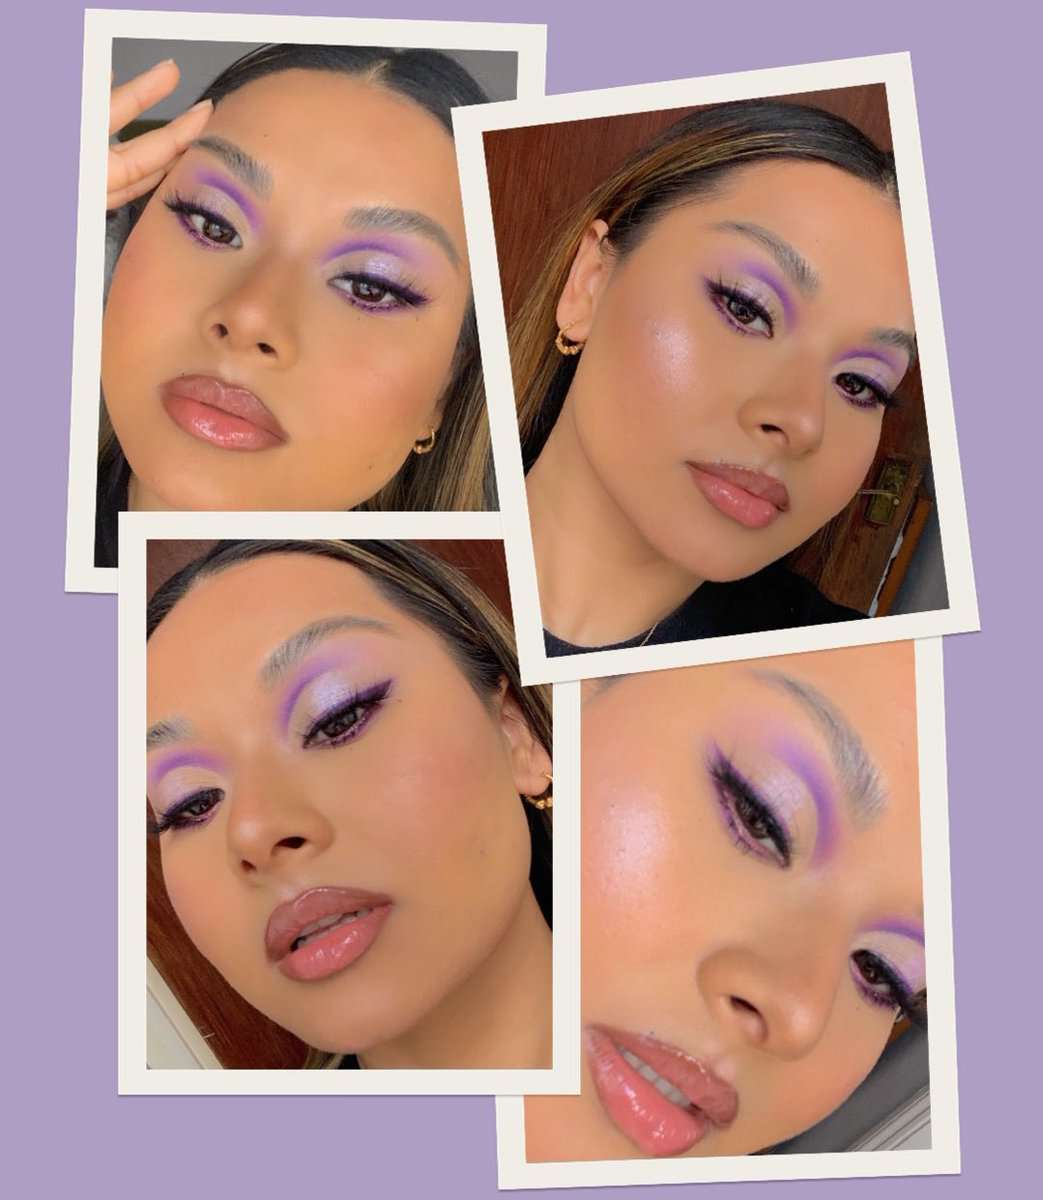 Cant stay away from this colour   using @ABHcosmetics Riviera palette  #anastasiabeverlyhills #stayhomewithABHpic.twitter.com/BoUOSrM6et